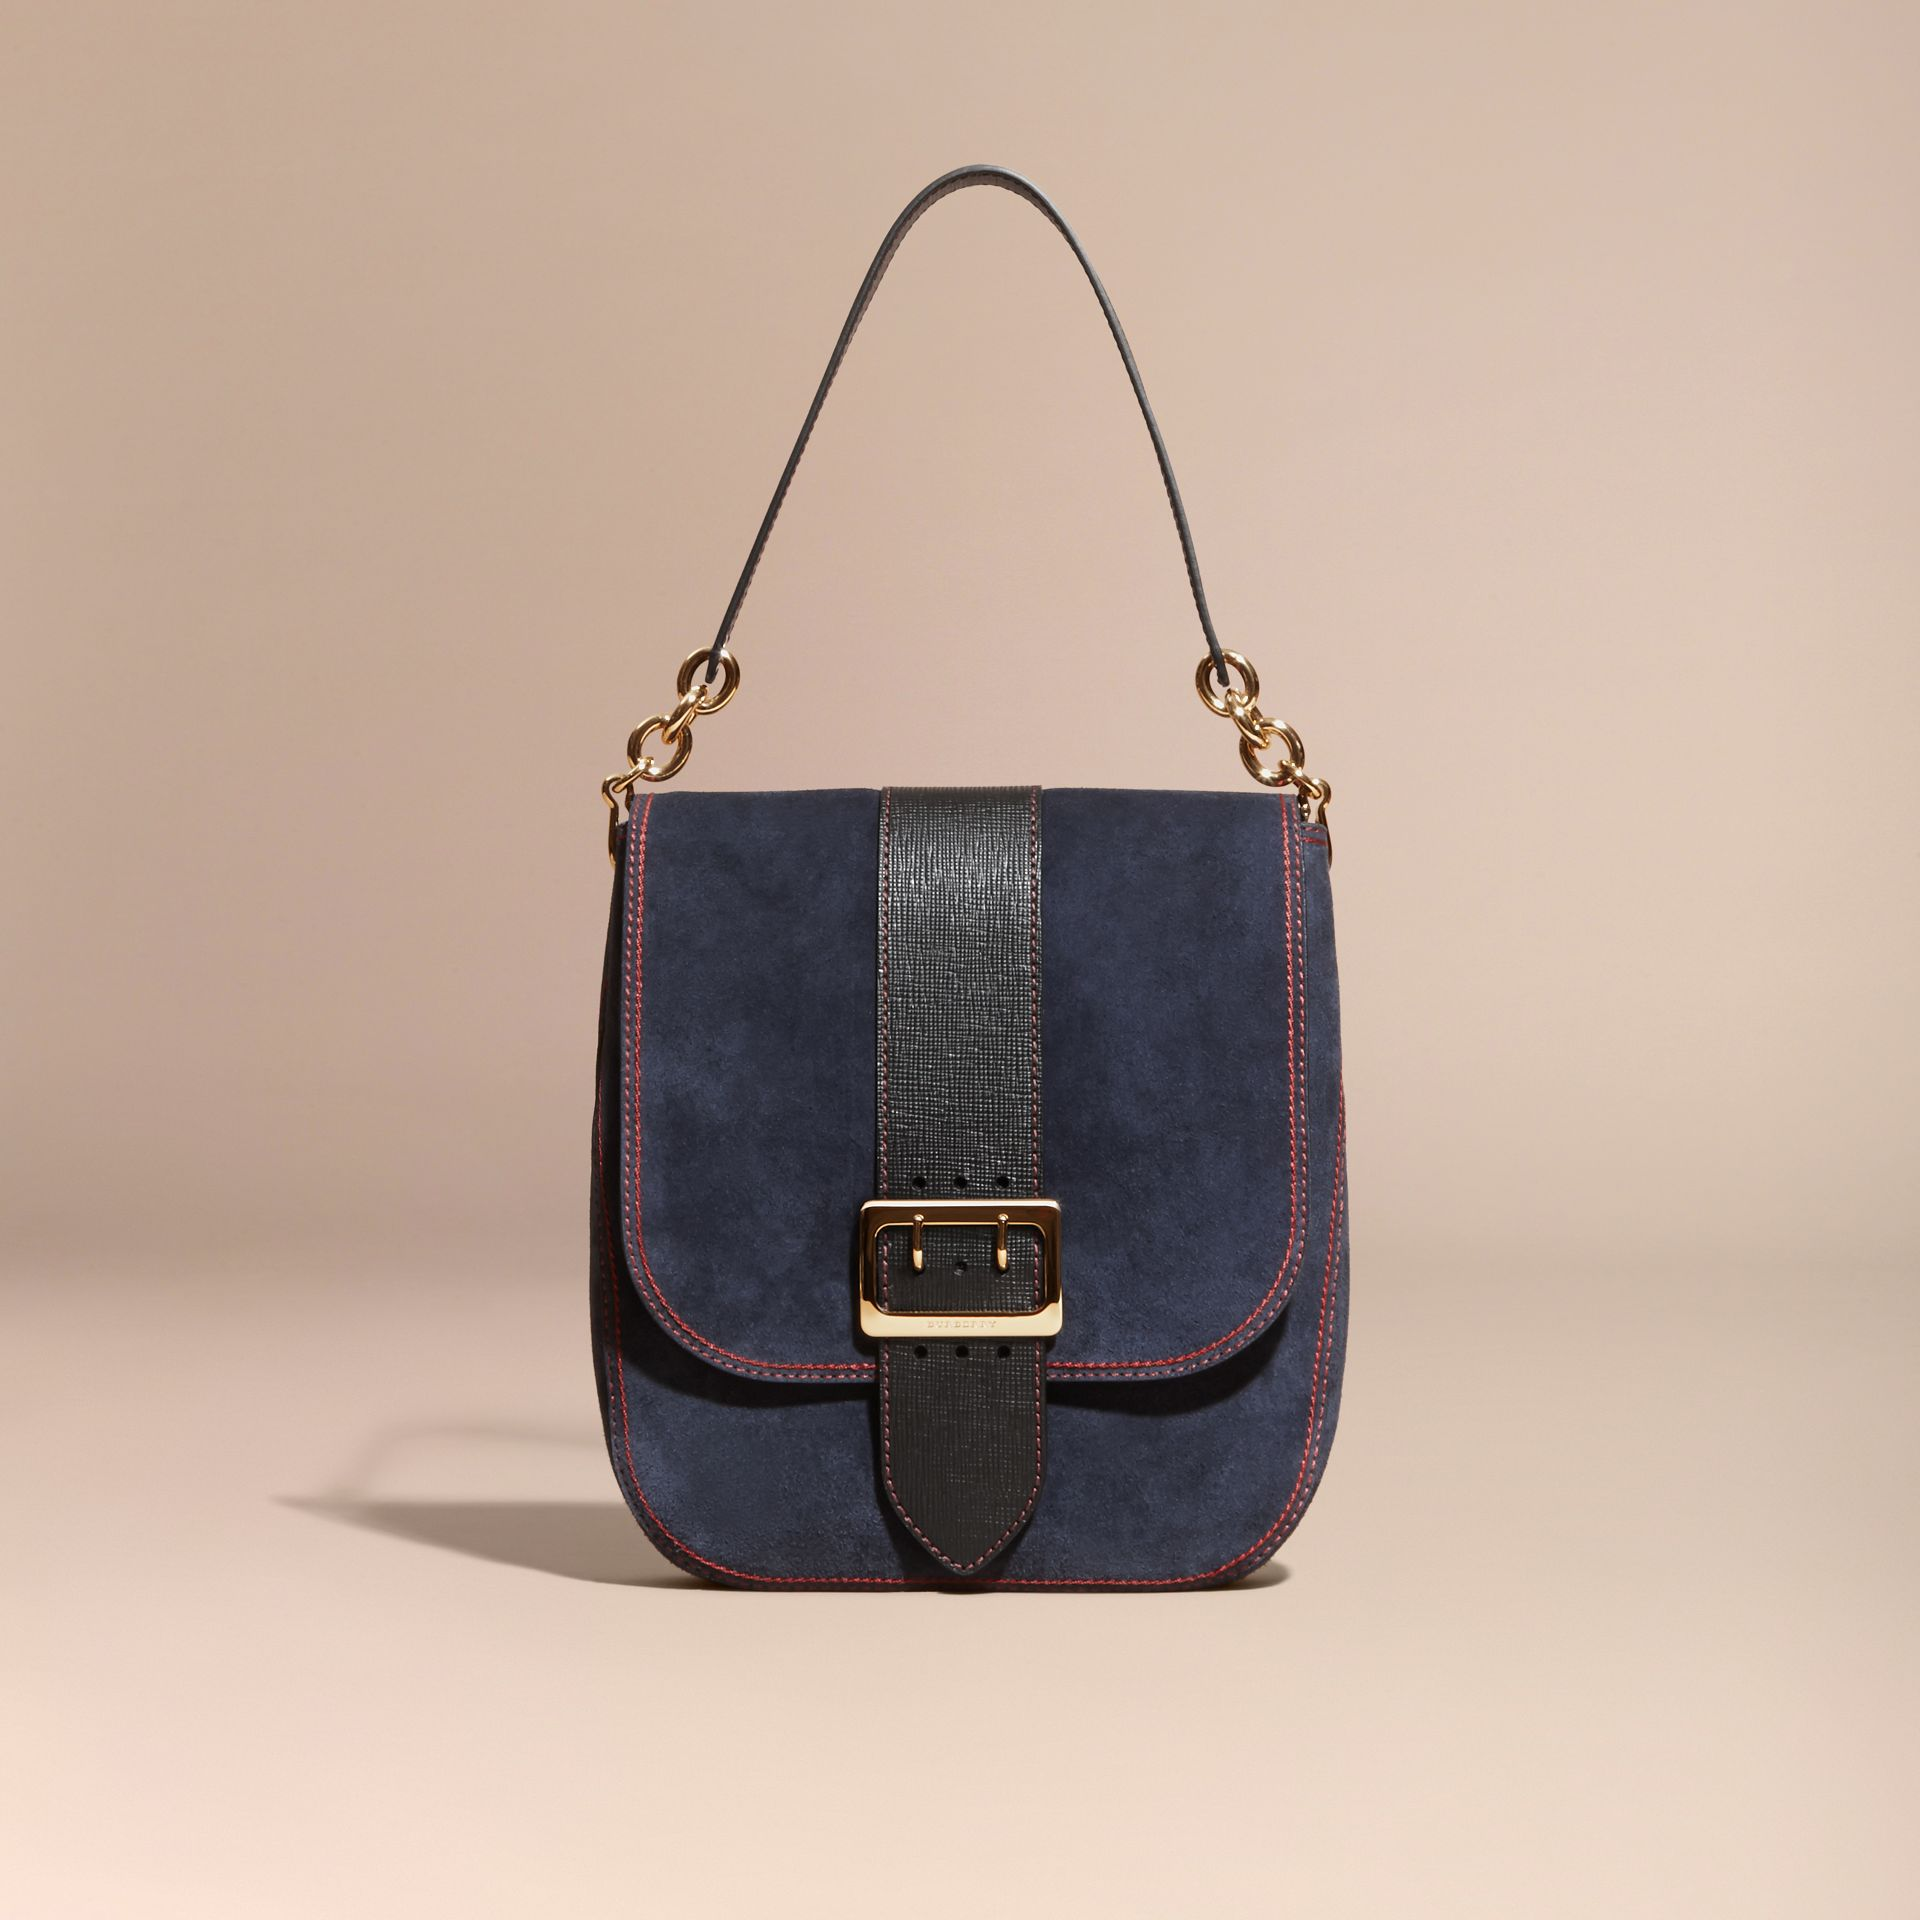 Navy The Buckle Satchel in Suede with Topstitching Navy - gallery image 7